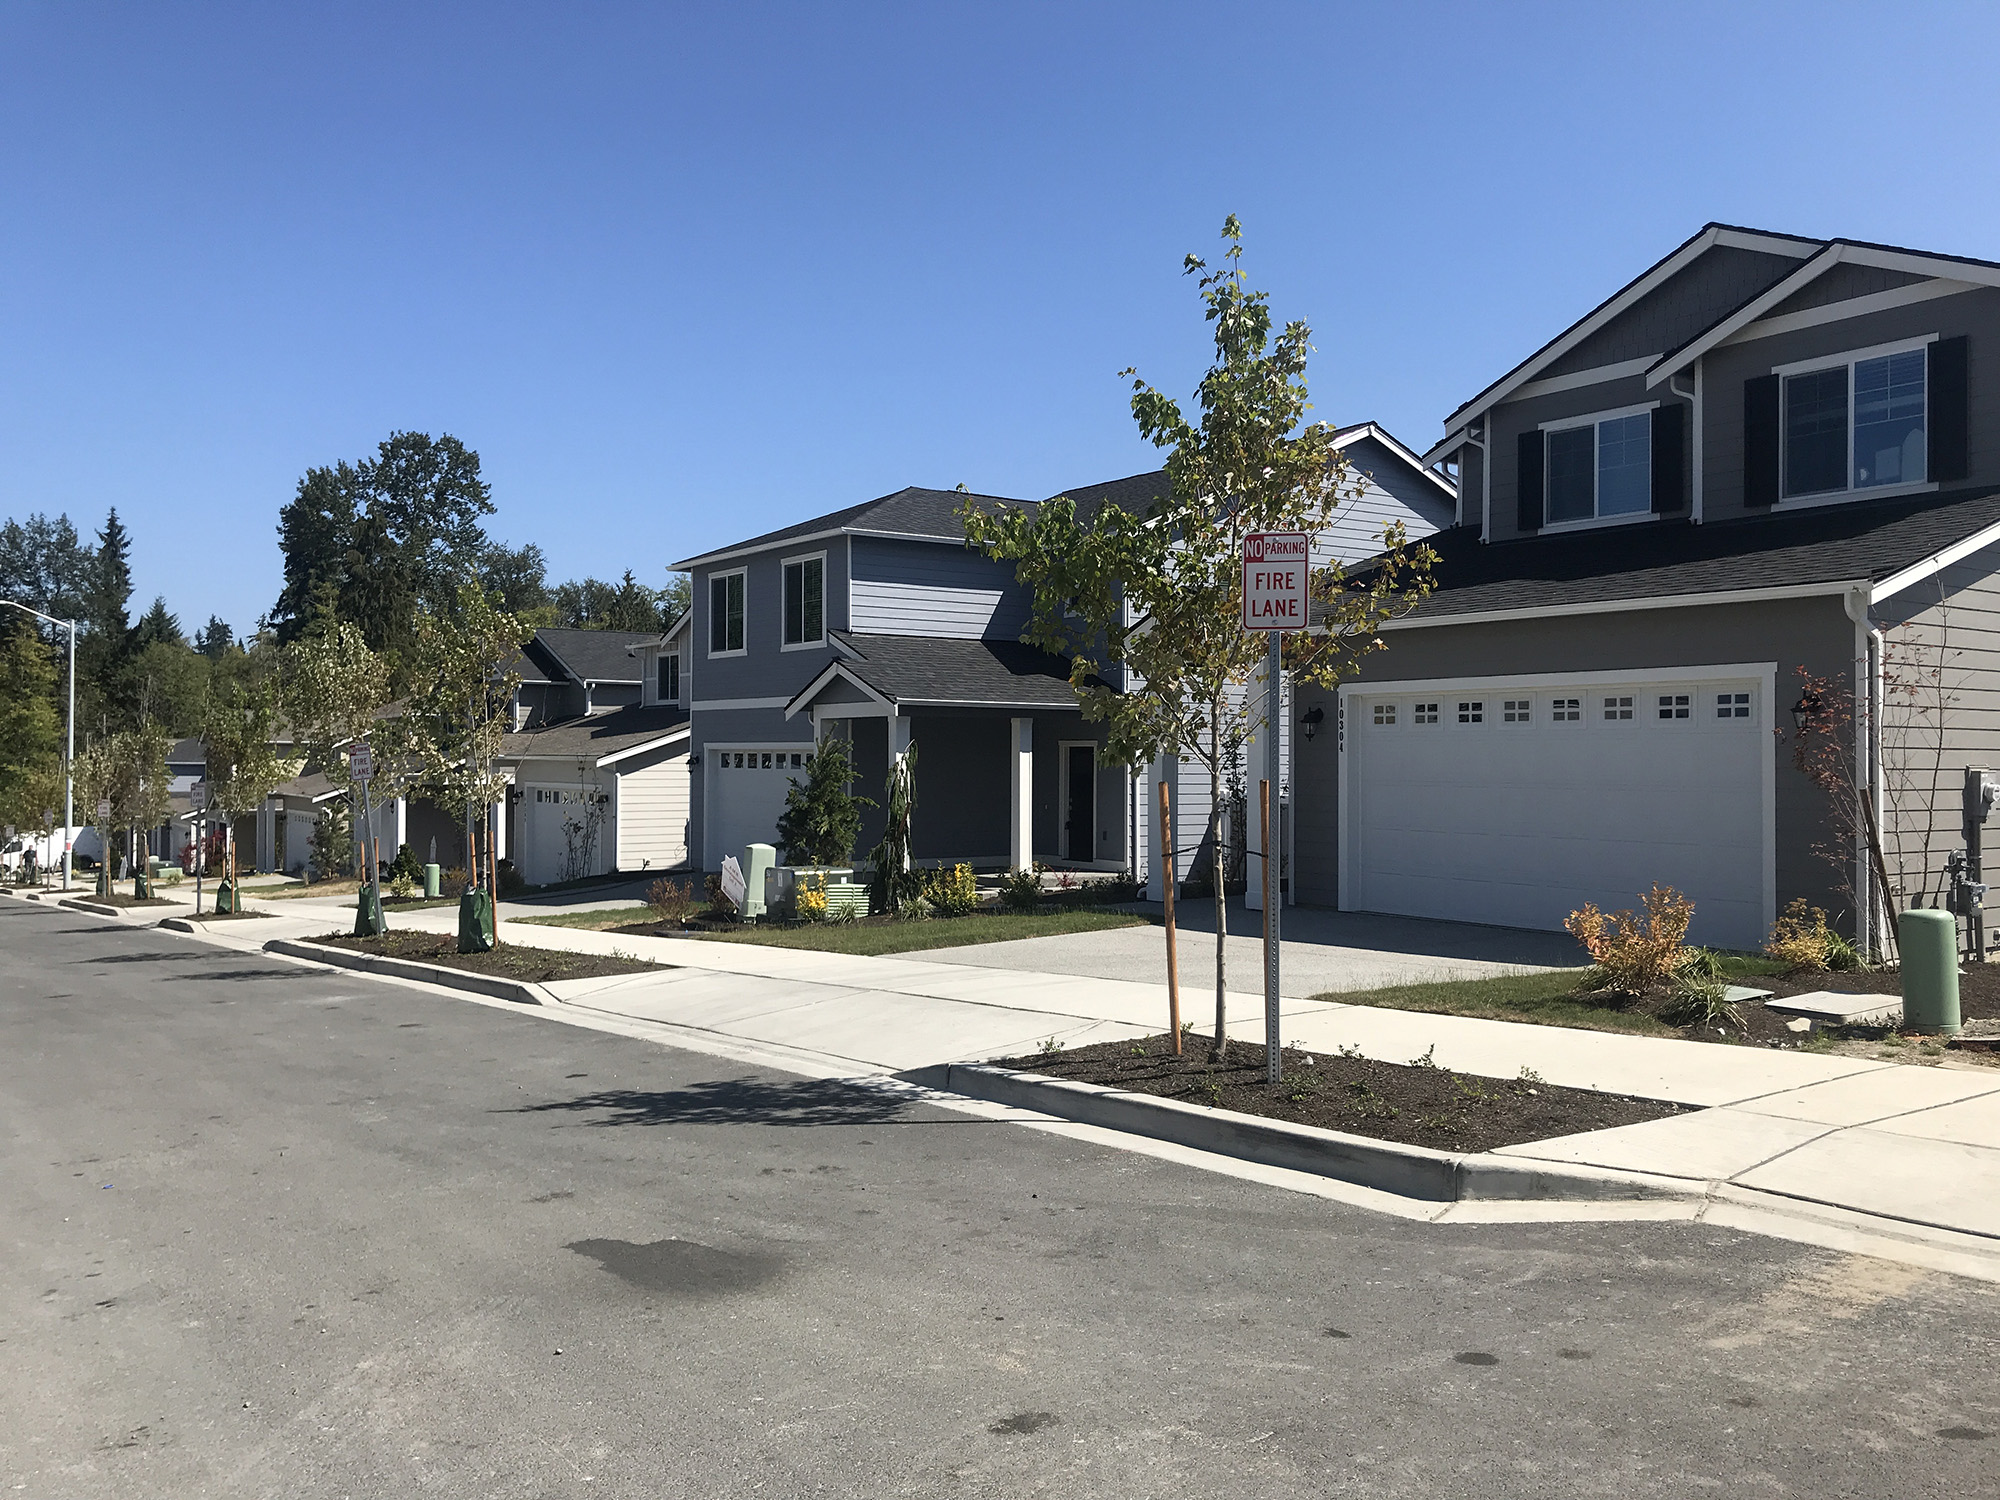 WALL STREET'S NEW SUBURBAN SUBDIVISION IS FULL OF RENTERS